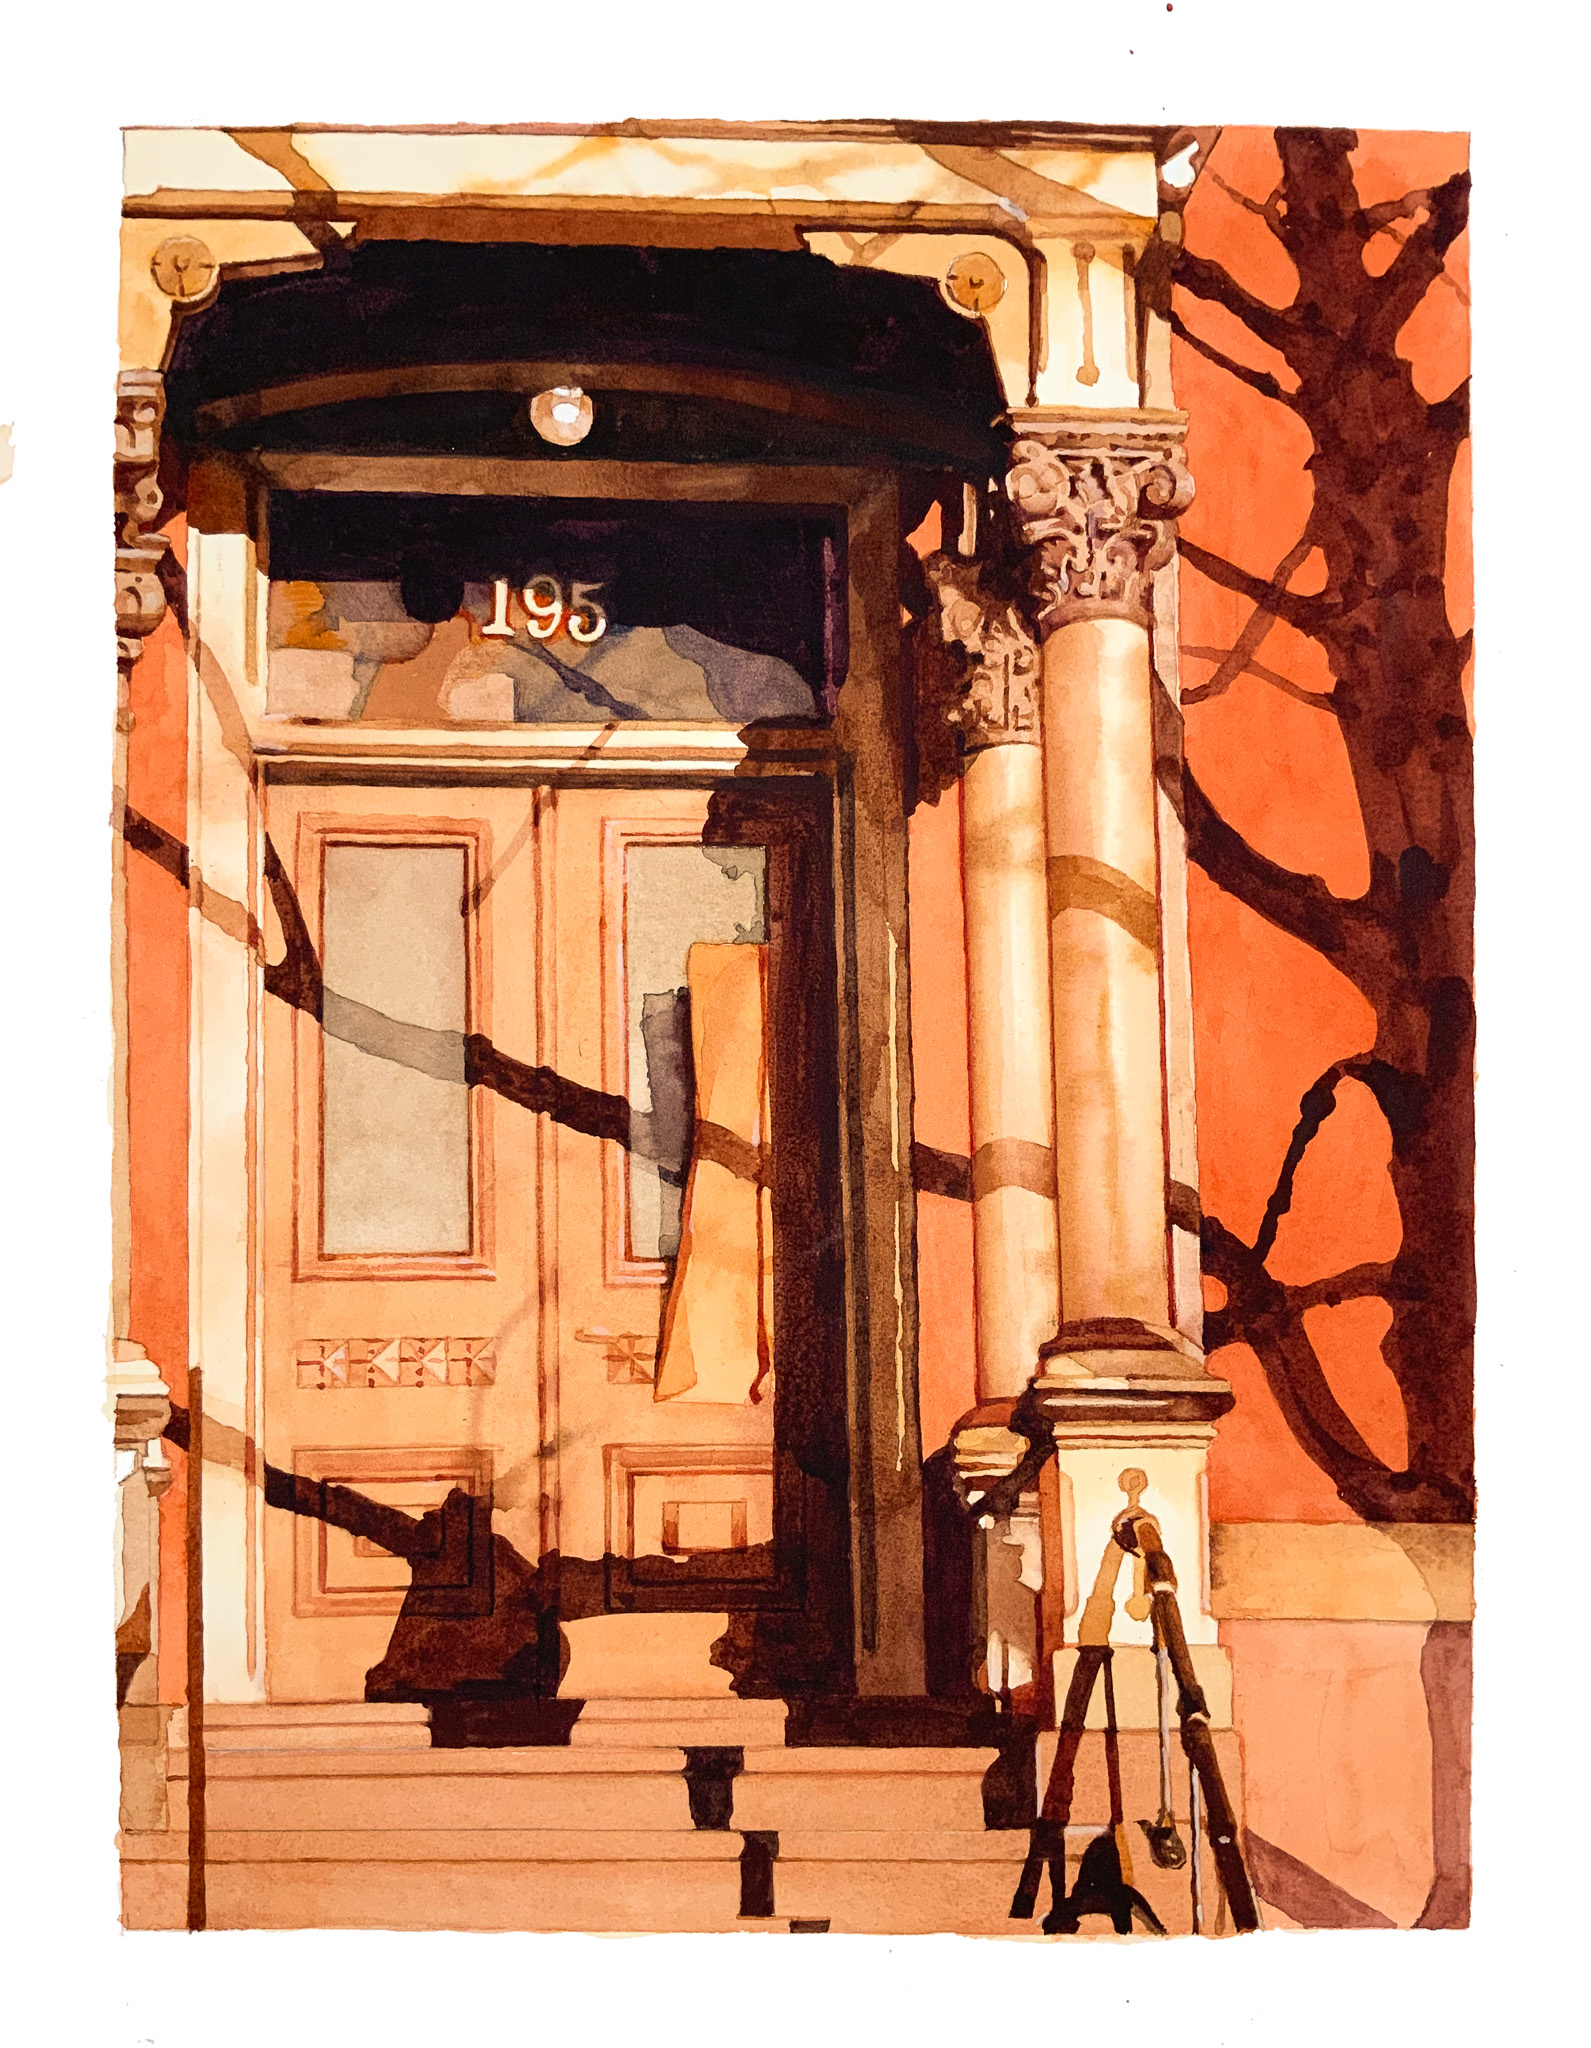 Mary Snowden's work entitled Doorway, made of watercolor on paper